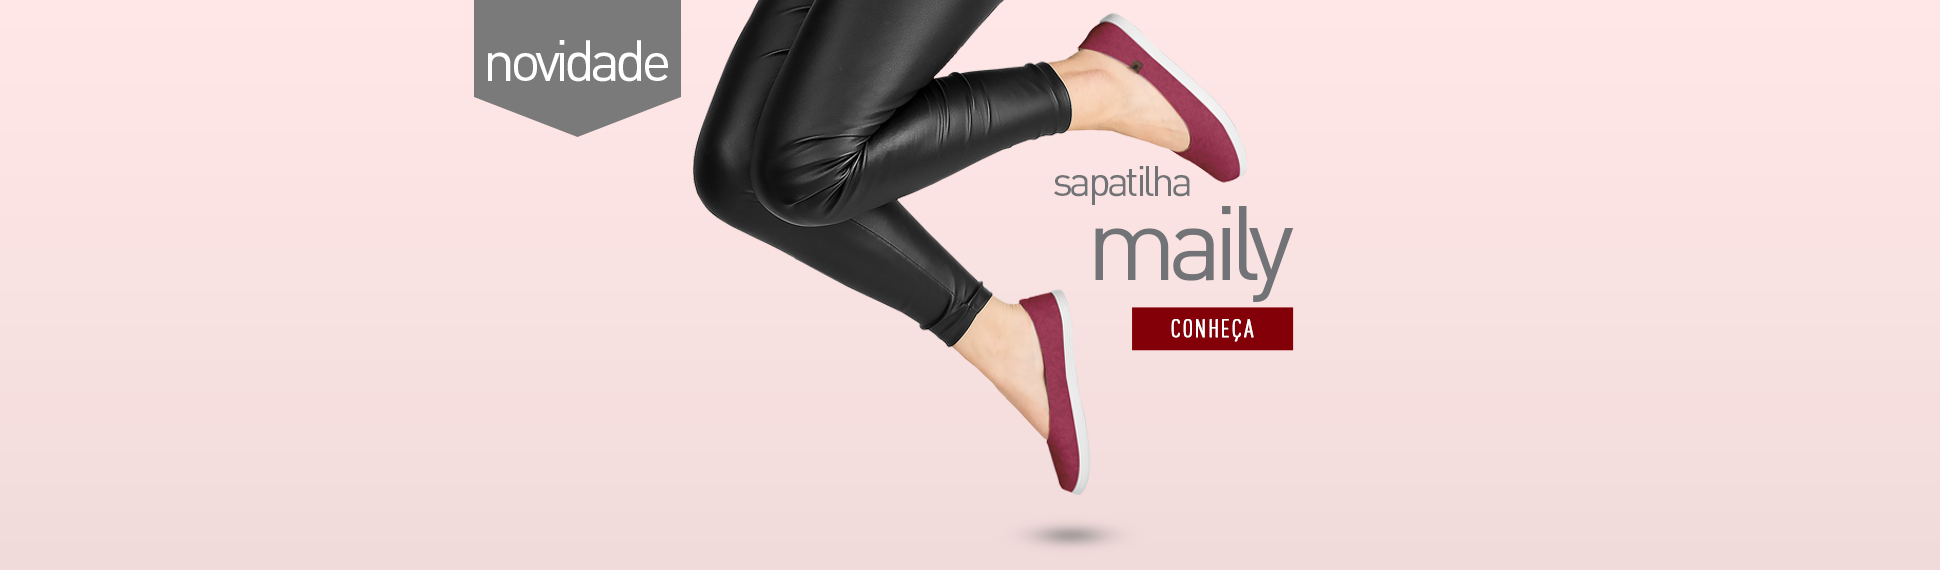 Sapatilha Maily